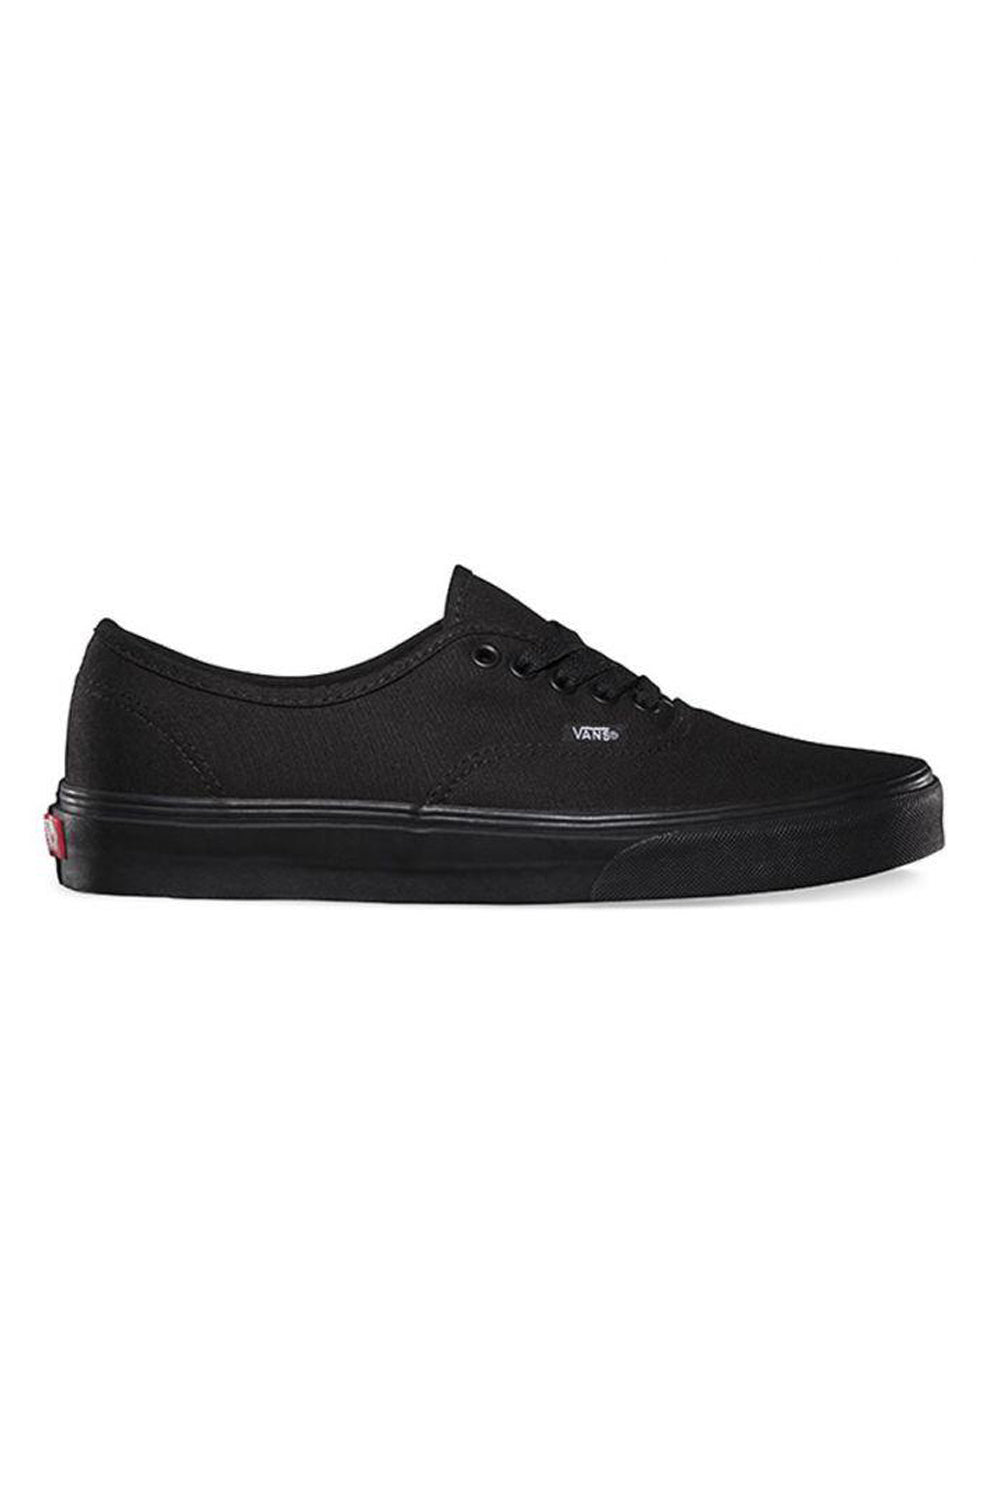 Authentic Black / Black